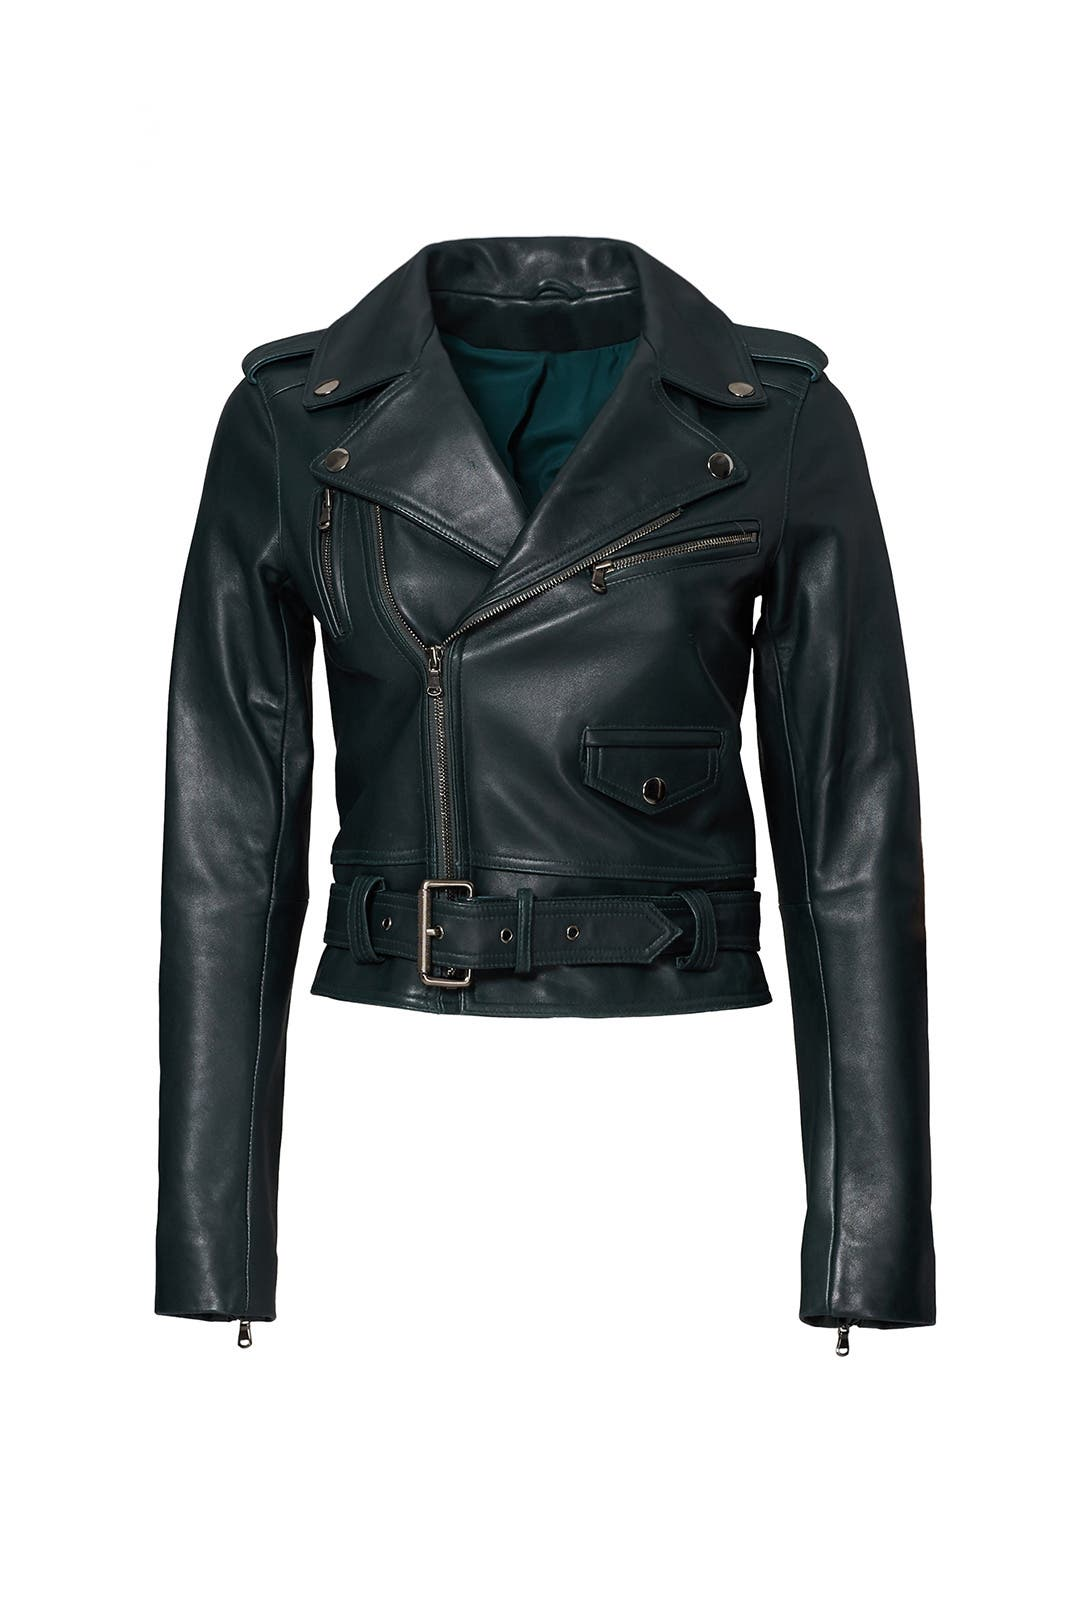 Green Cooper Leather Jacket by Parker for $100 | Rent the Runway